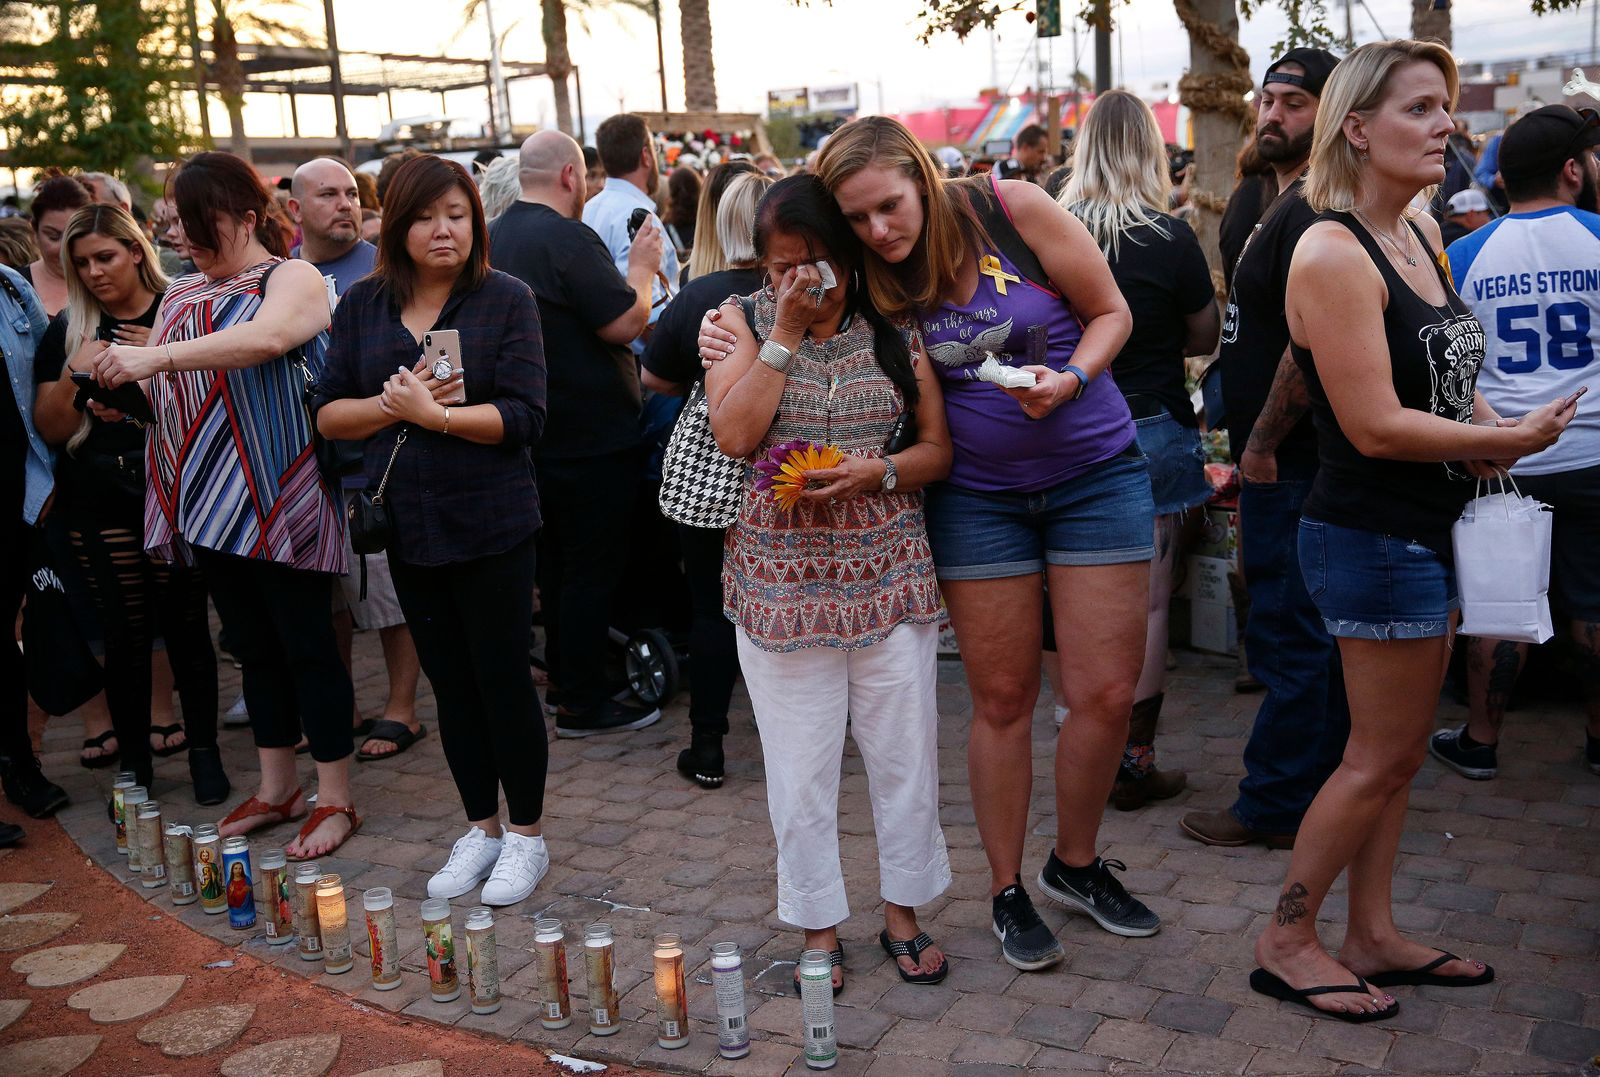 FILE - In this Monday, Oct. 1, 2018 file photo people embrace before a ceremony at a memorial garden, on the anniversary of the mass shooting a year earlier, in Las Vegas. (AP Photo/John Locher,File)